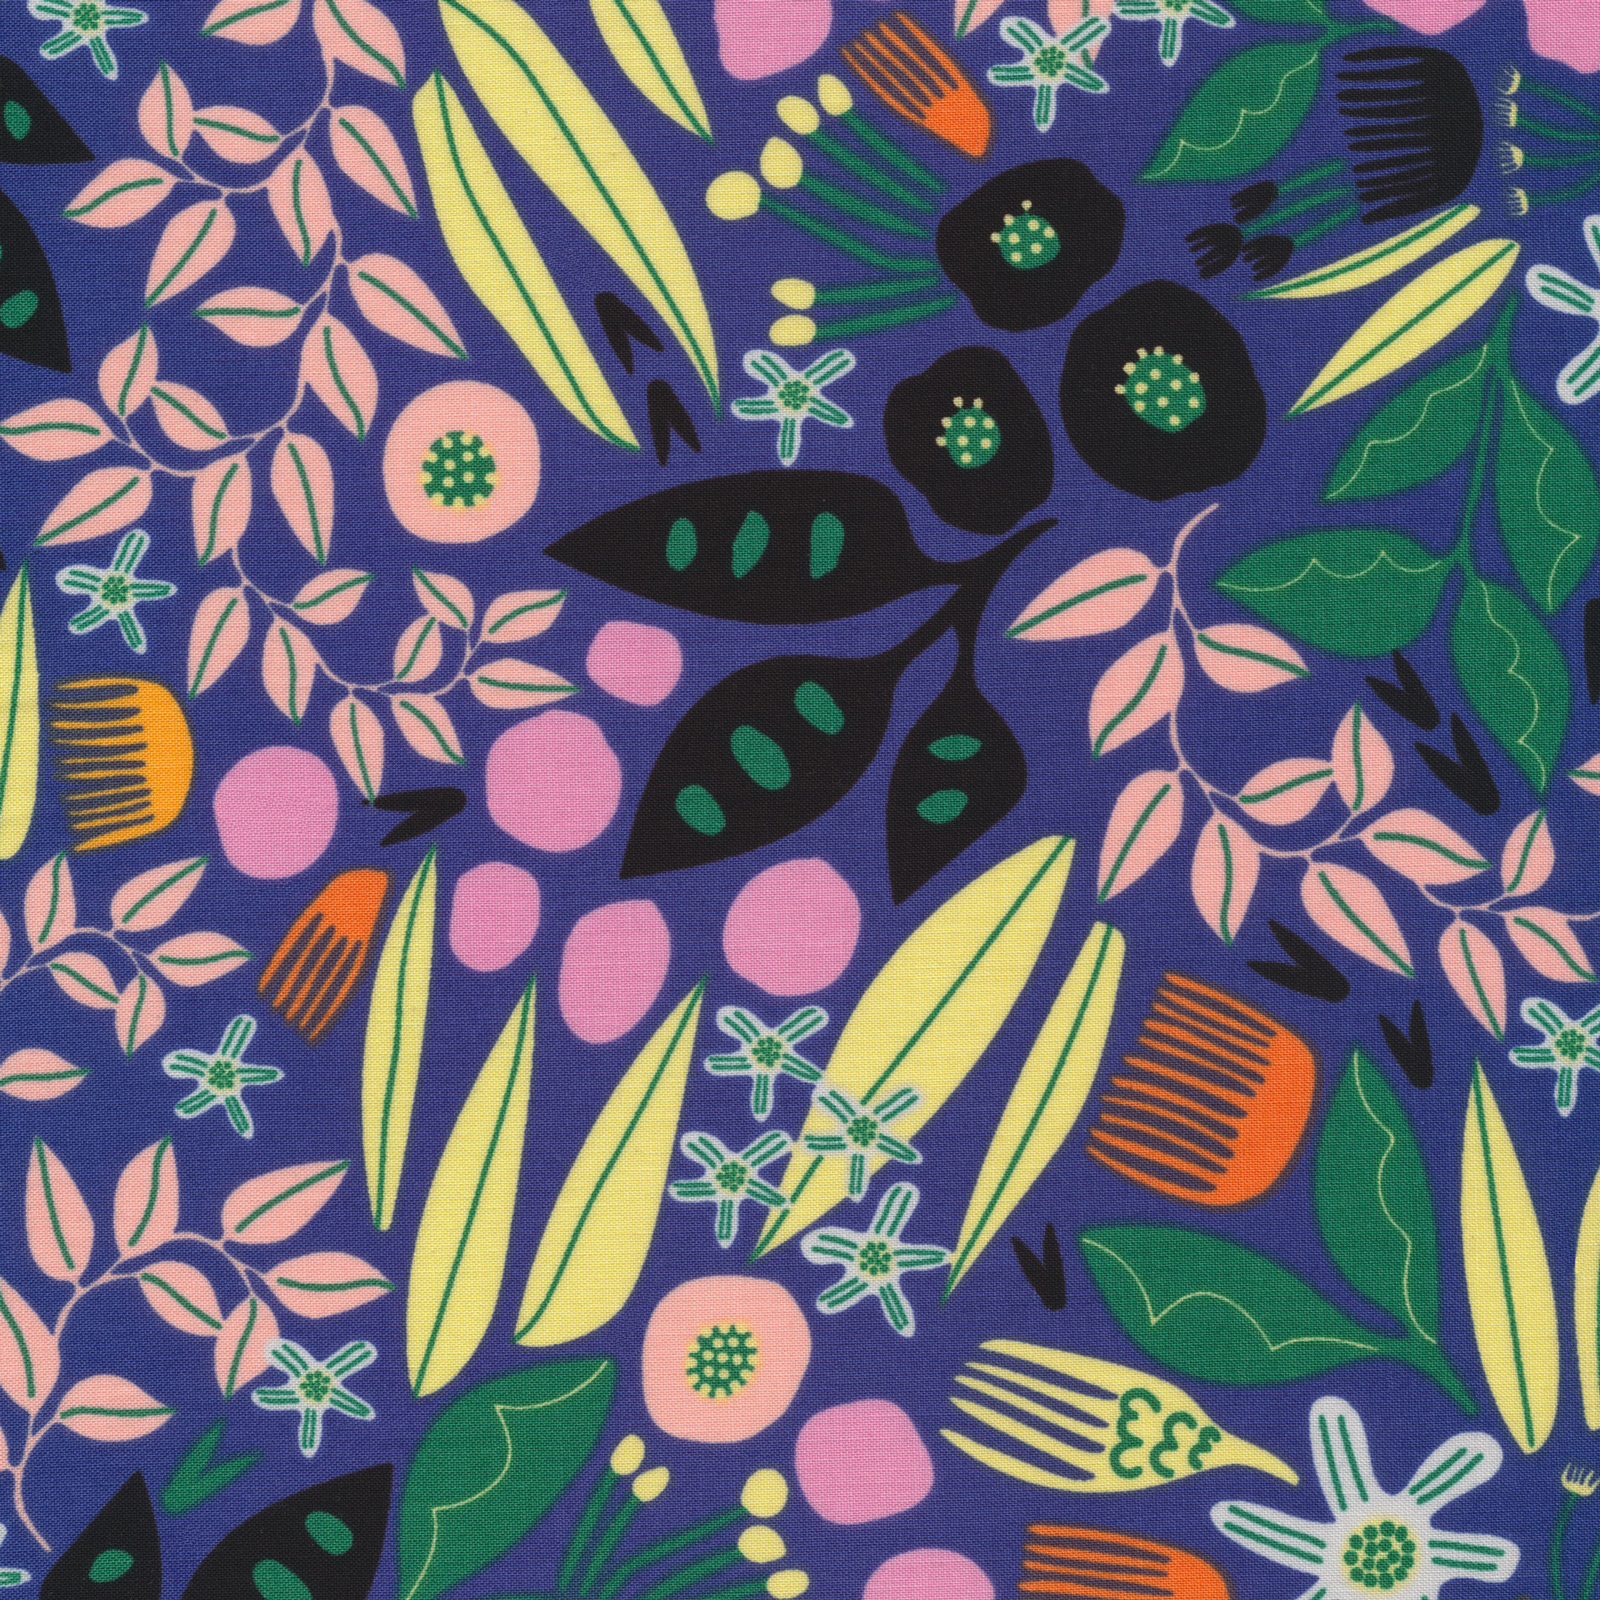 Bwindi from the Wild collection by Cloud9 Fabrics, 100% organic cotton fabric